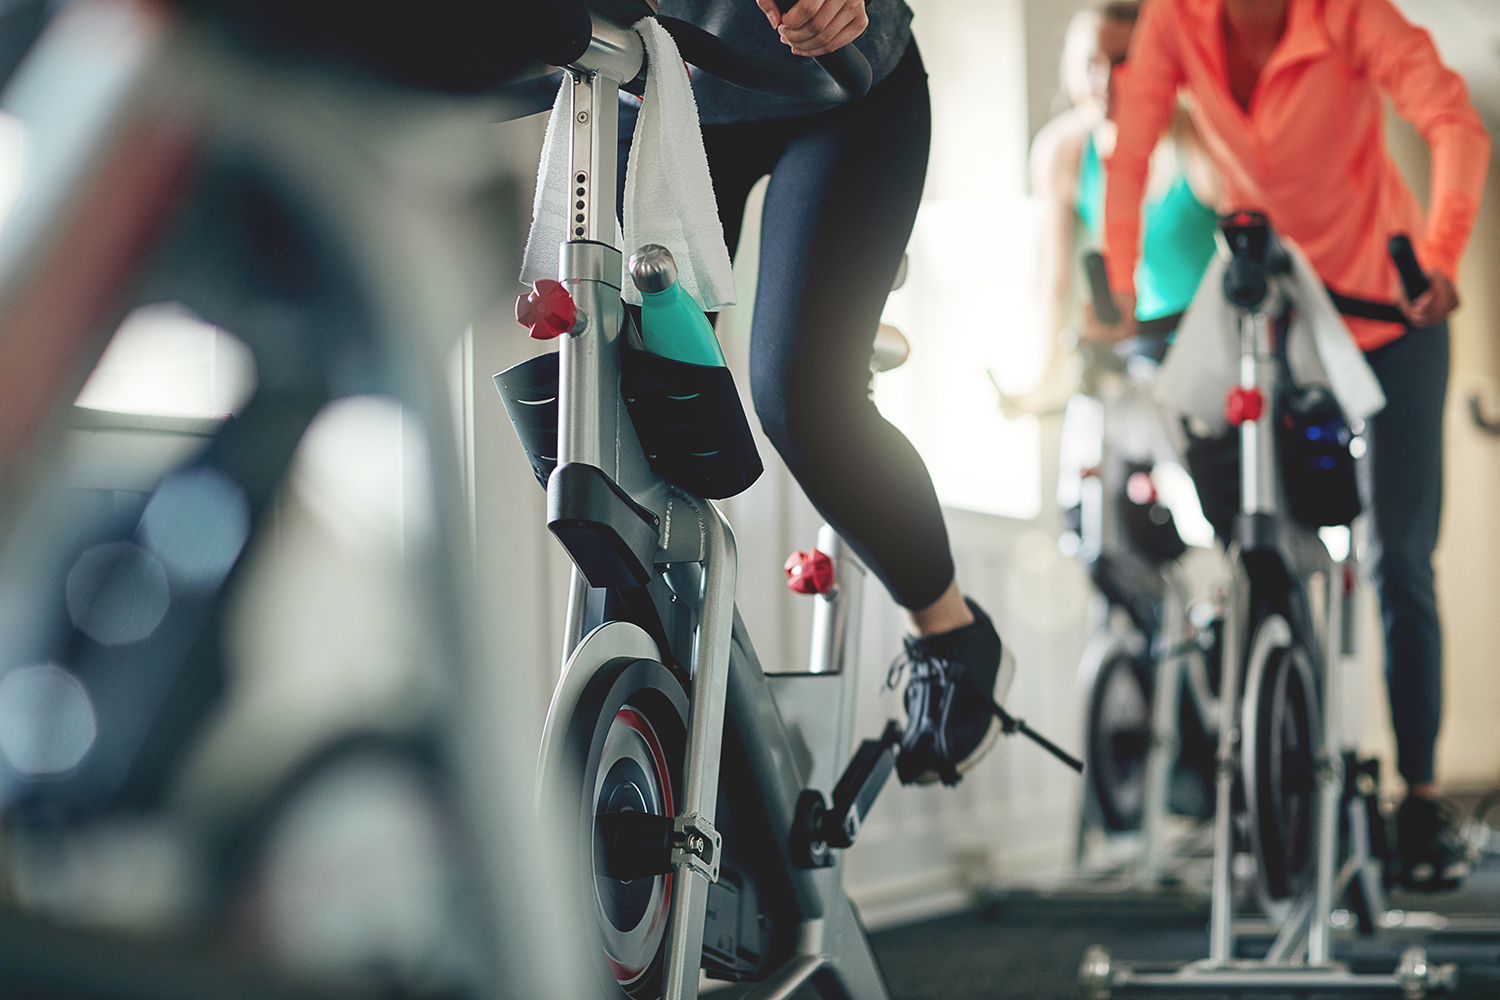 I Tried the Intense New SoulCycle Class That Has Everyone Freaking Out